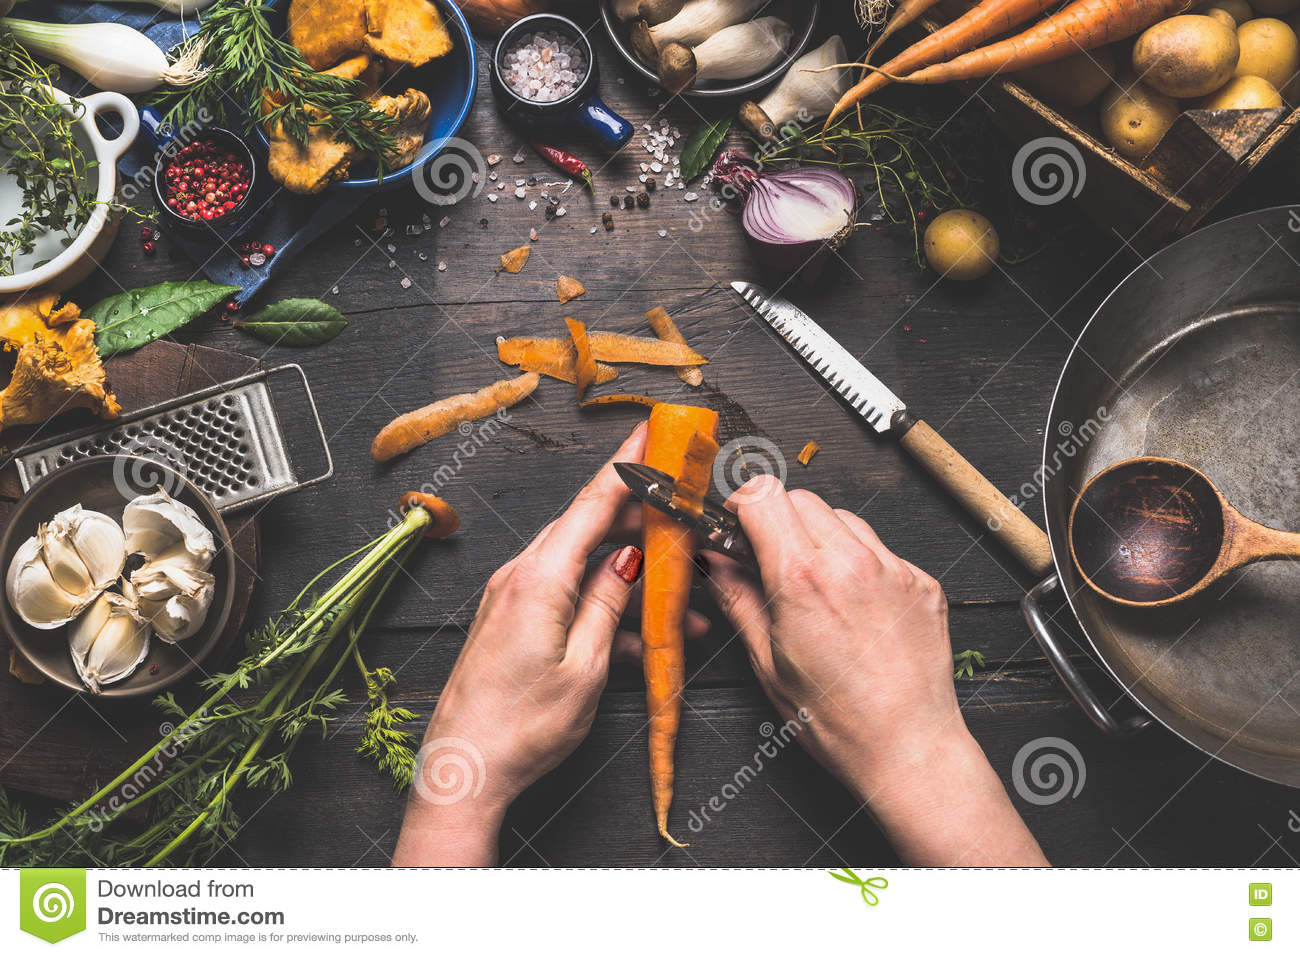 Female woman hands peeling carrots on dark wooden kitchen table with vegetables cooking ingredients